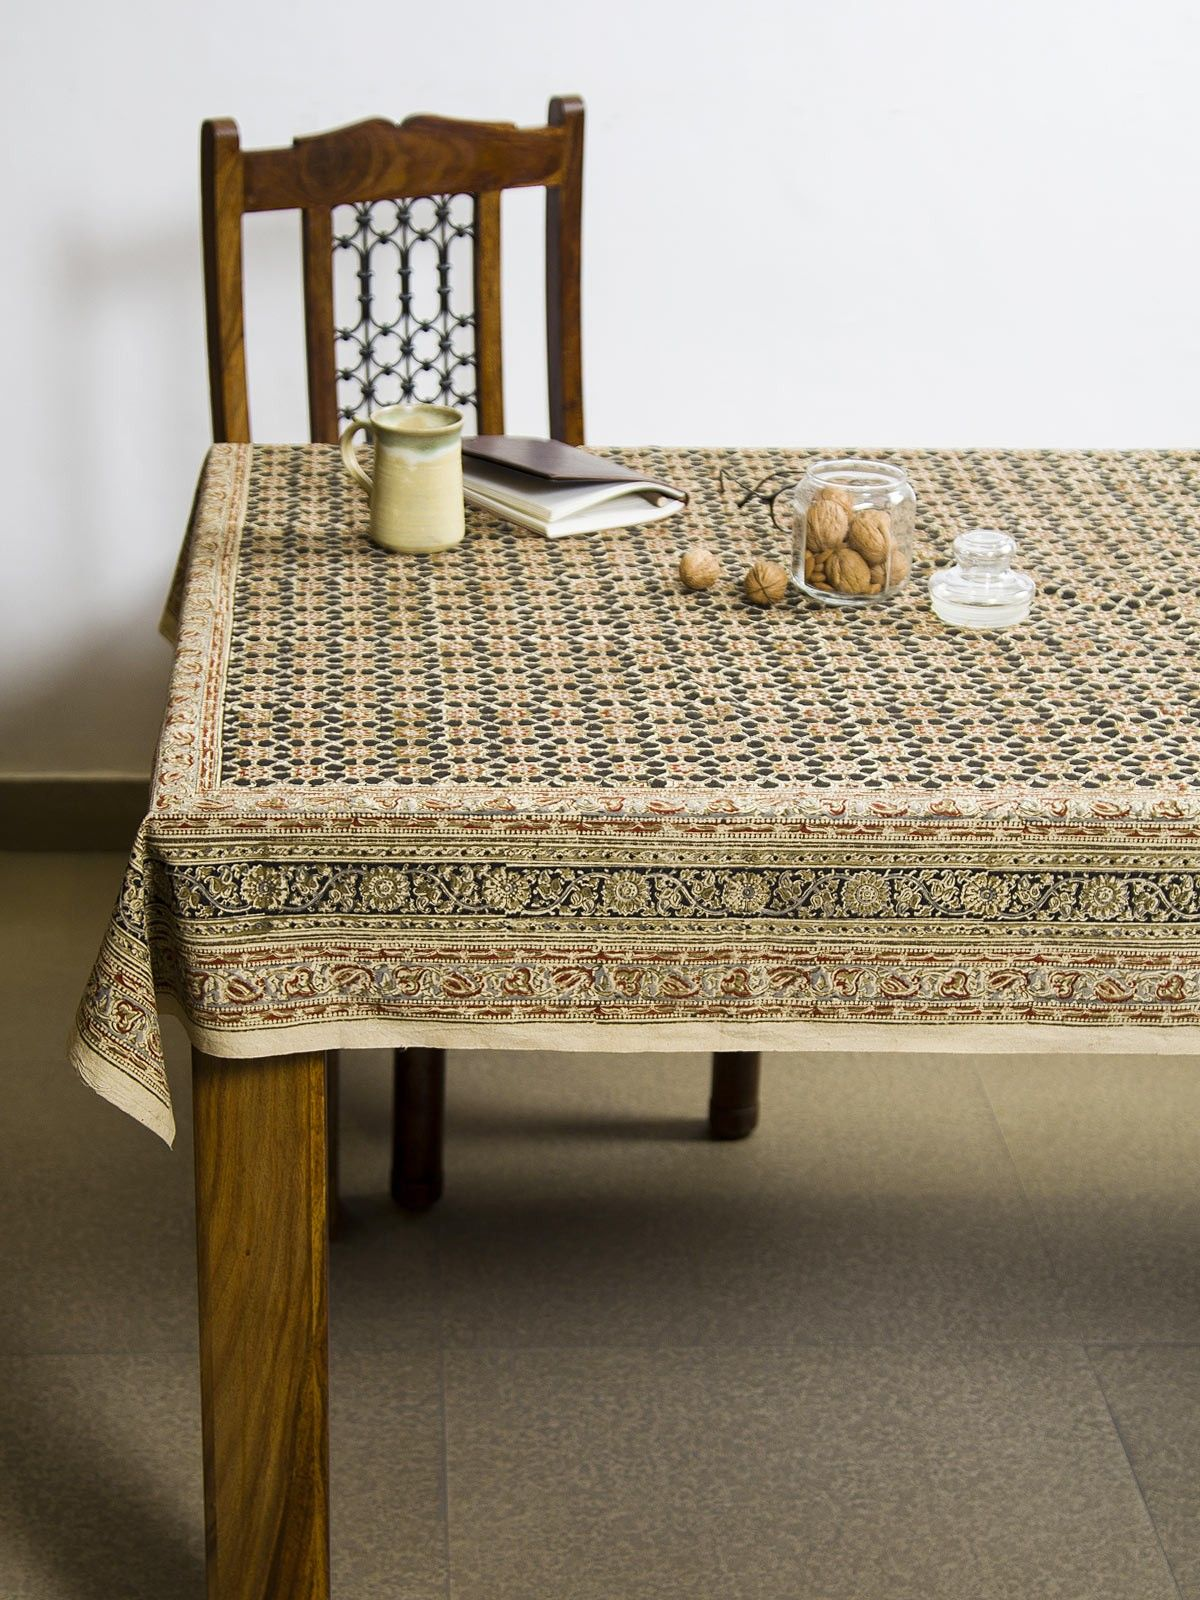 Charcoal Vayati Kalamkari 6 seater table cover